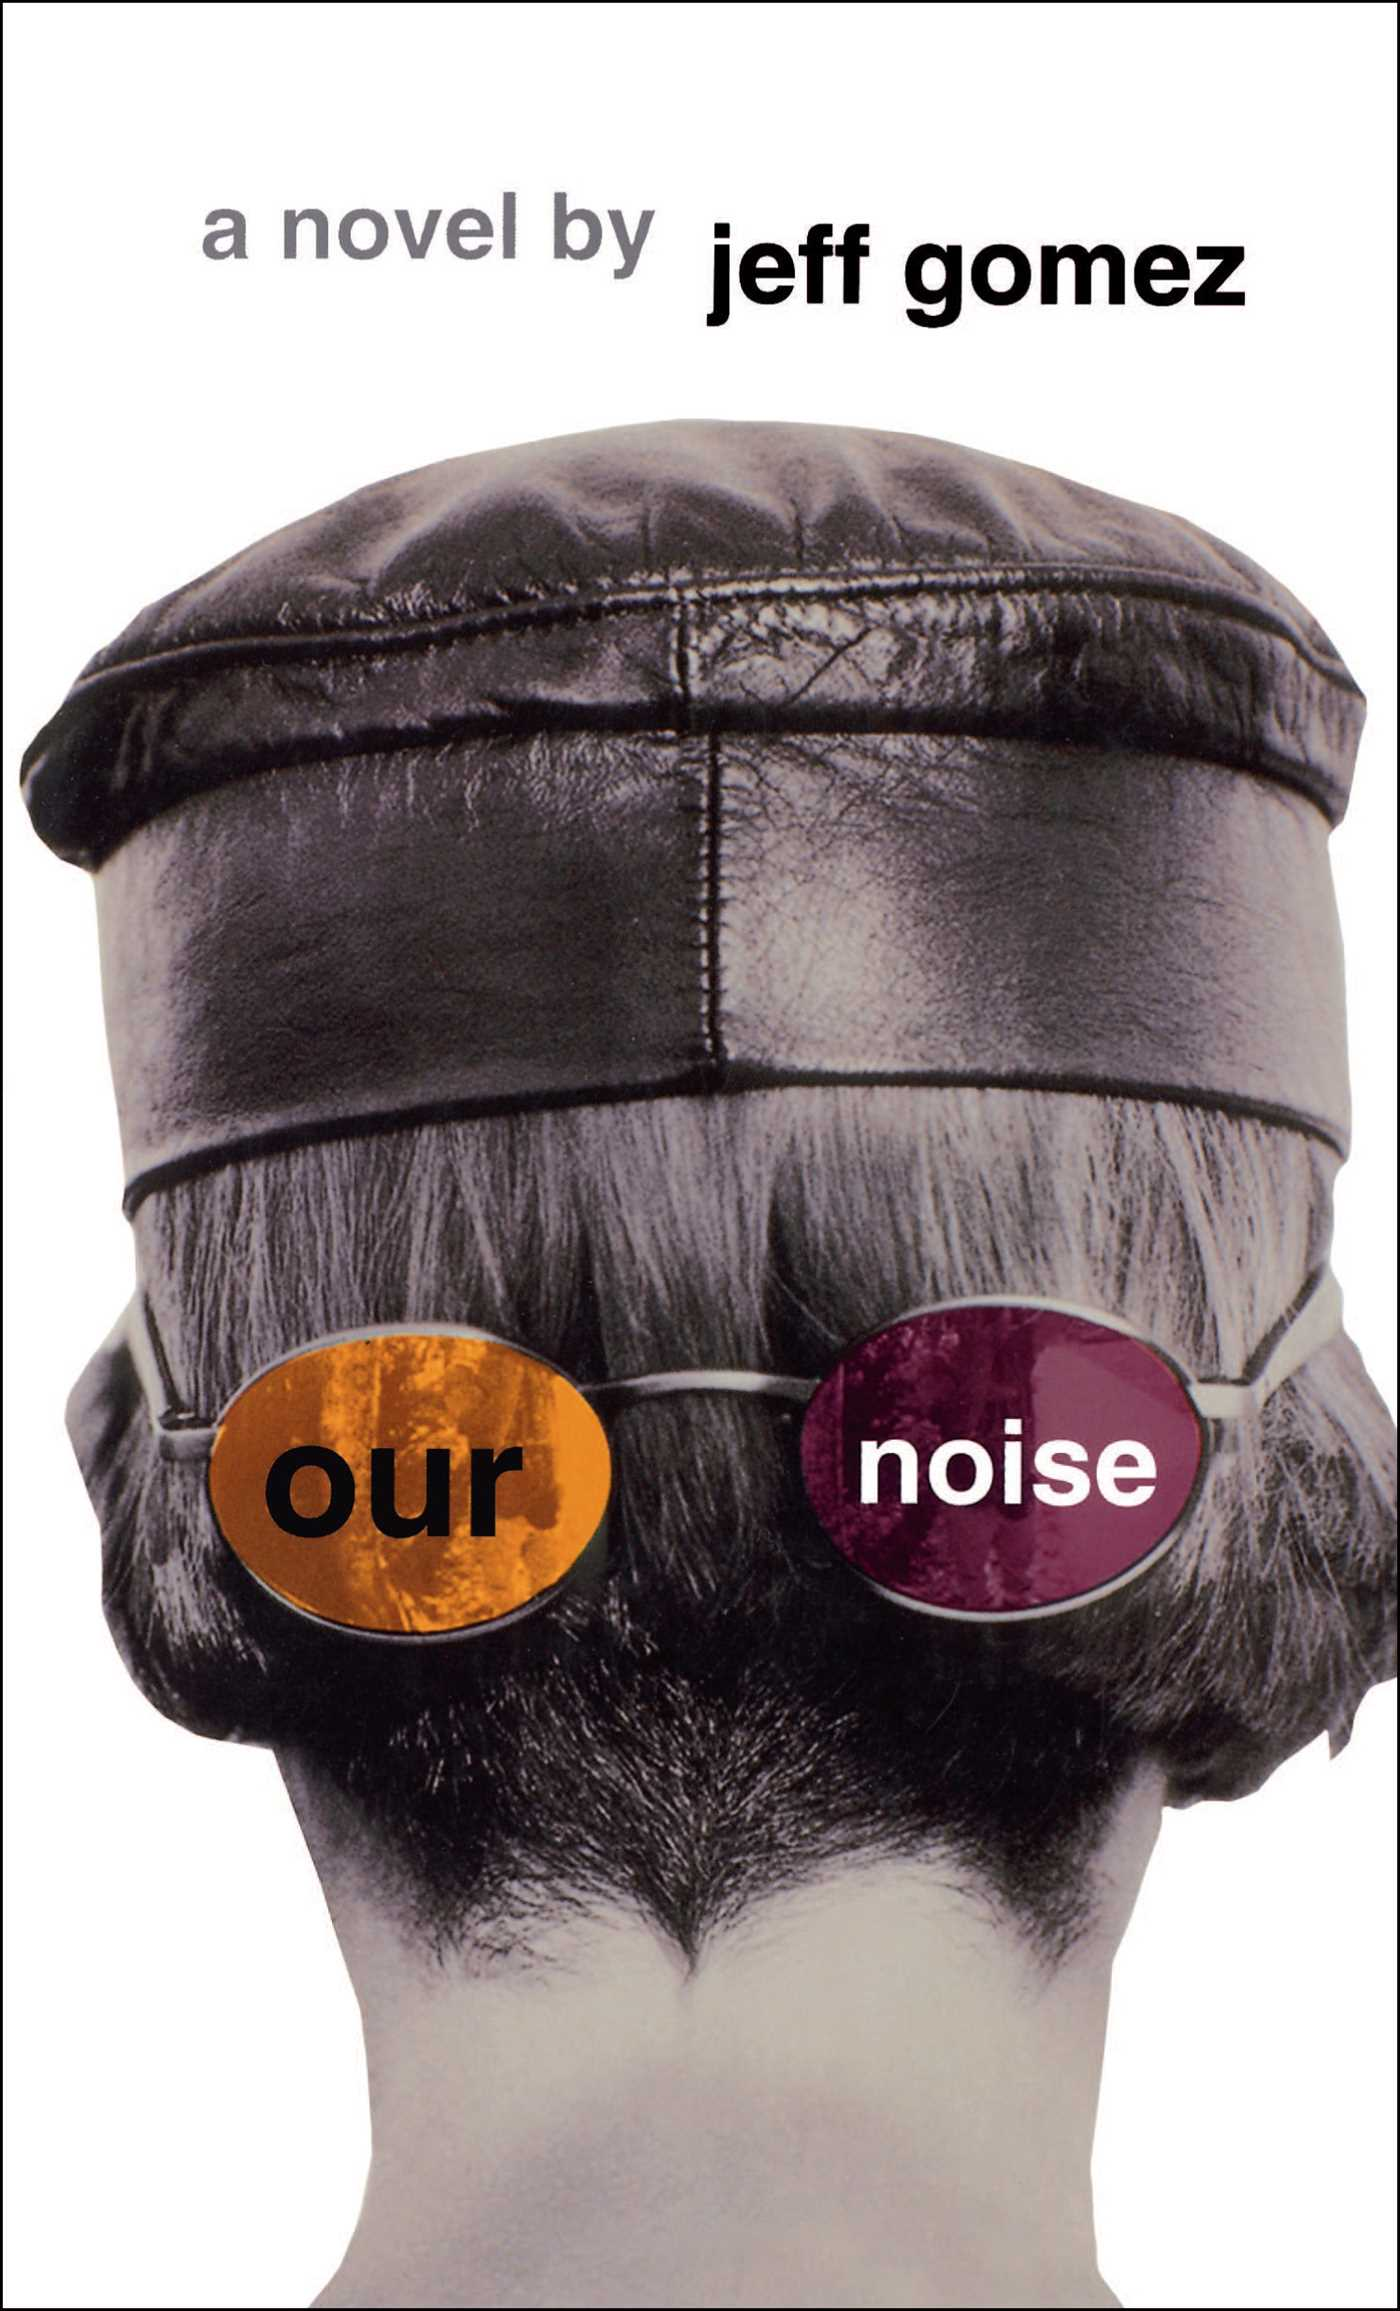 Our-noise-9780684800998_hr